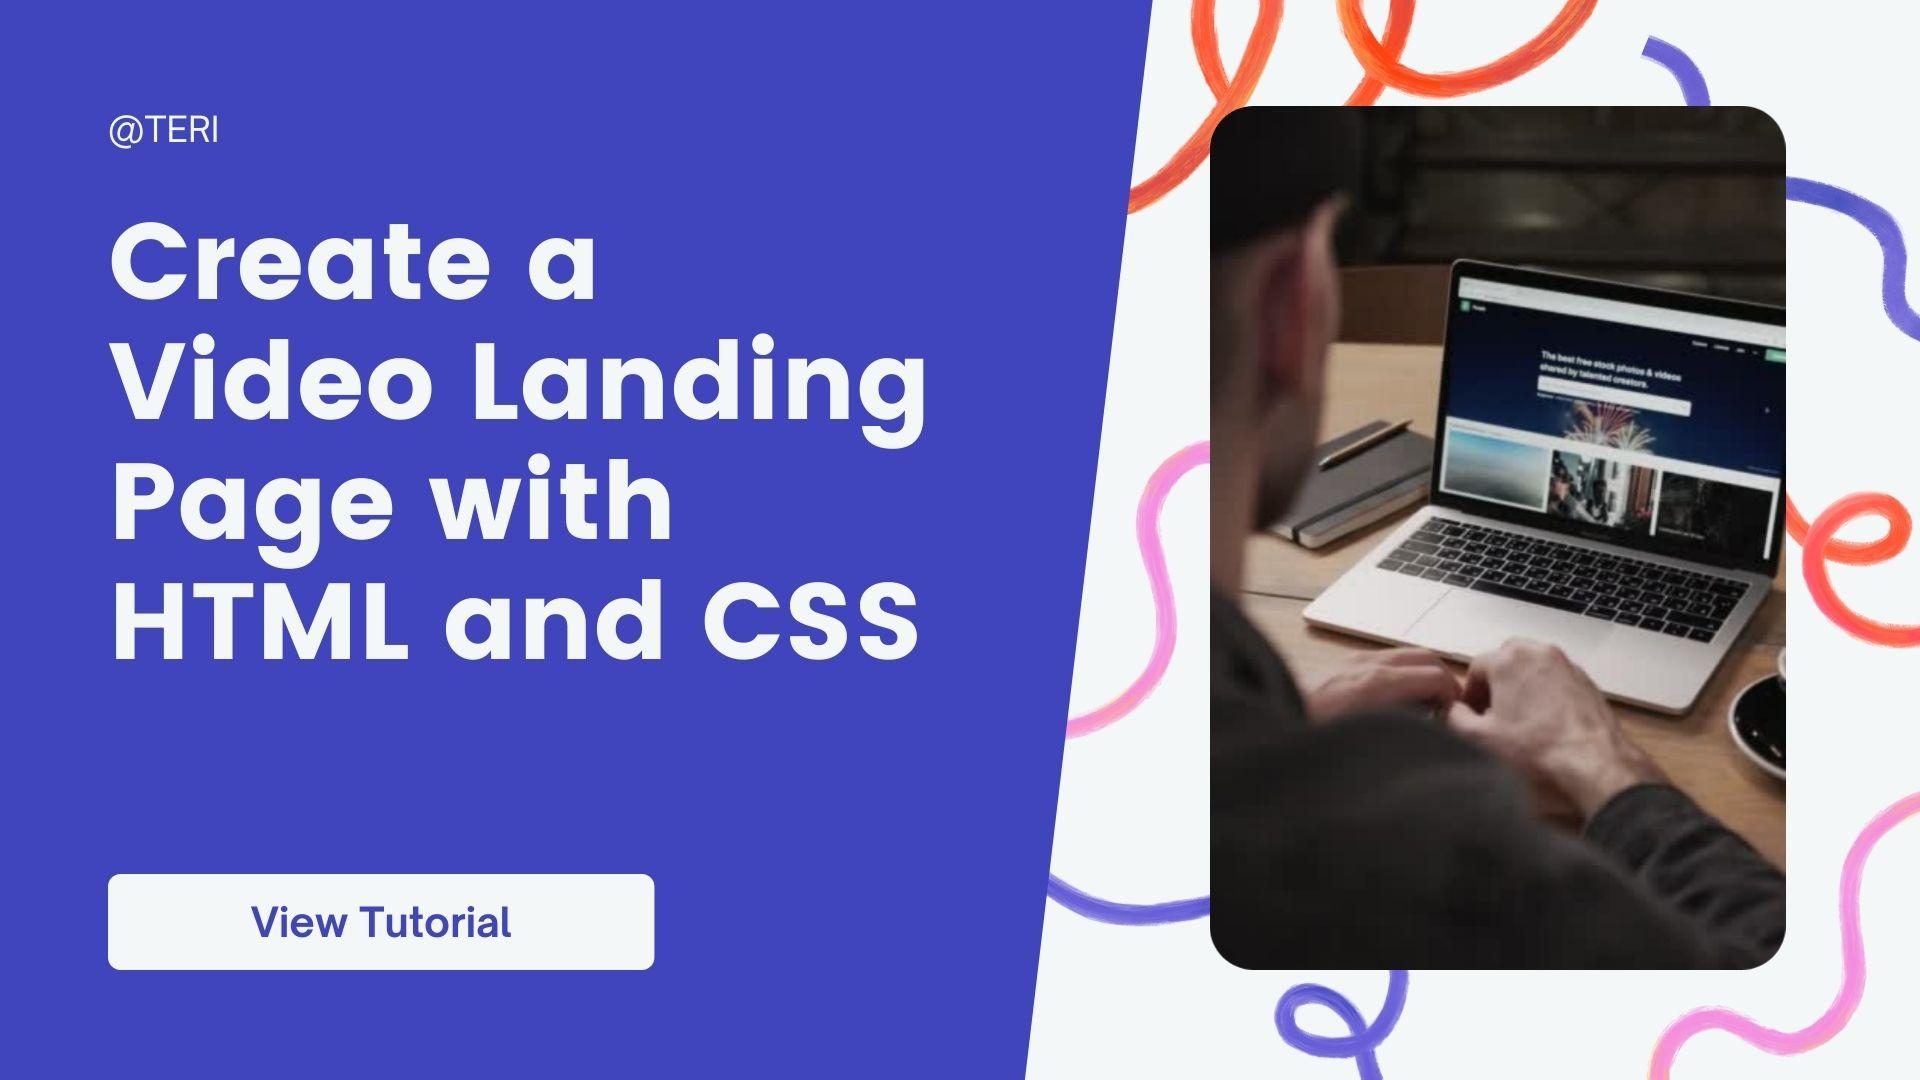 Create a Video Landing Page with HTML and CSS